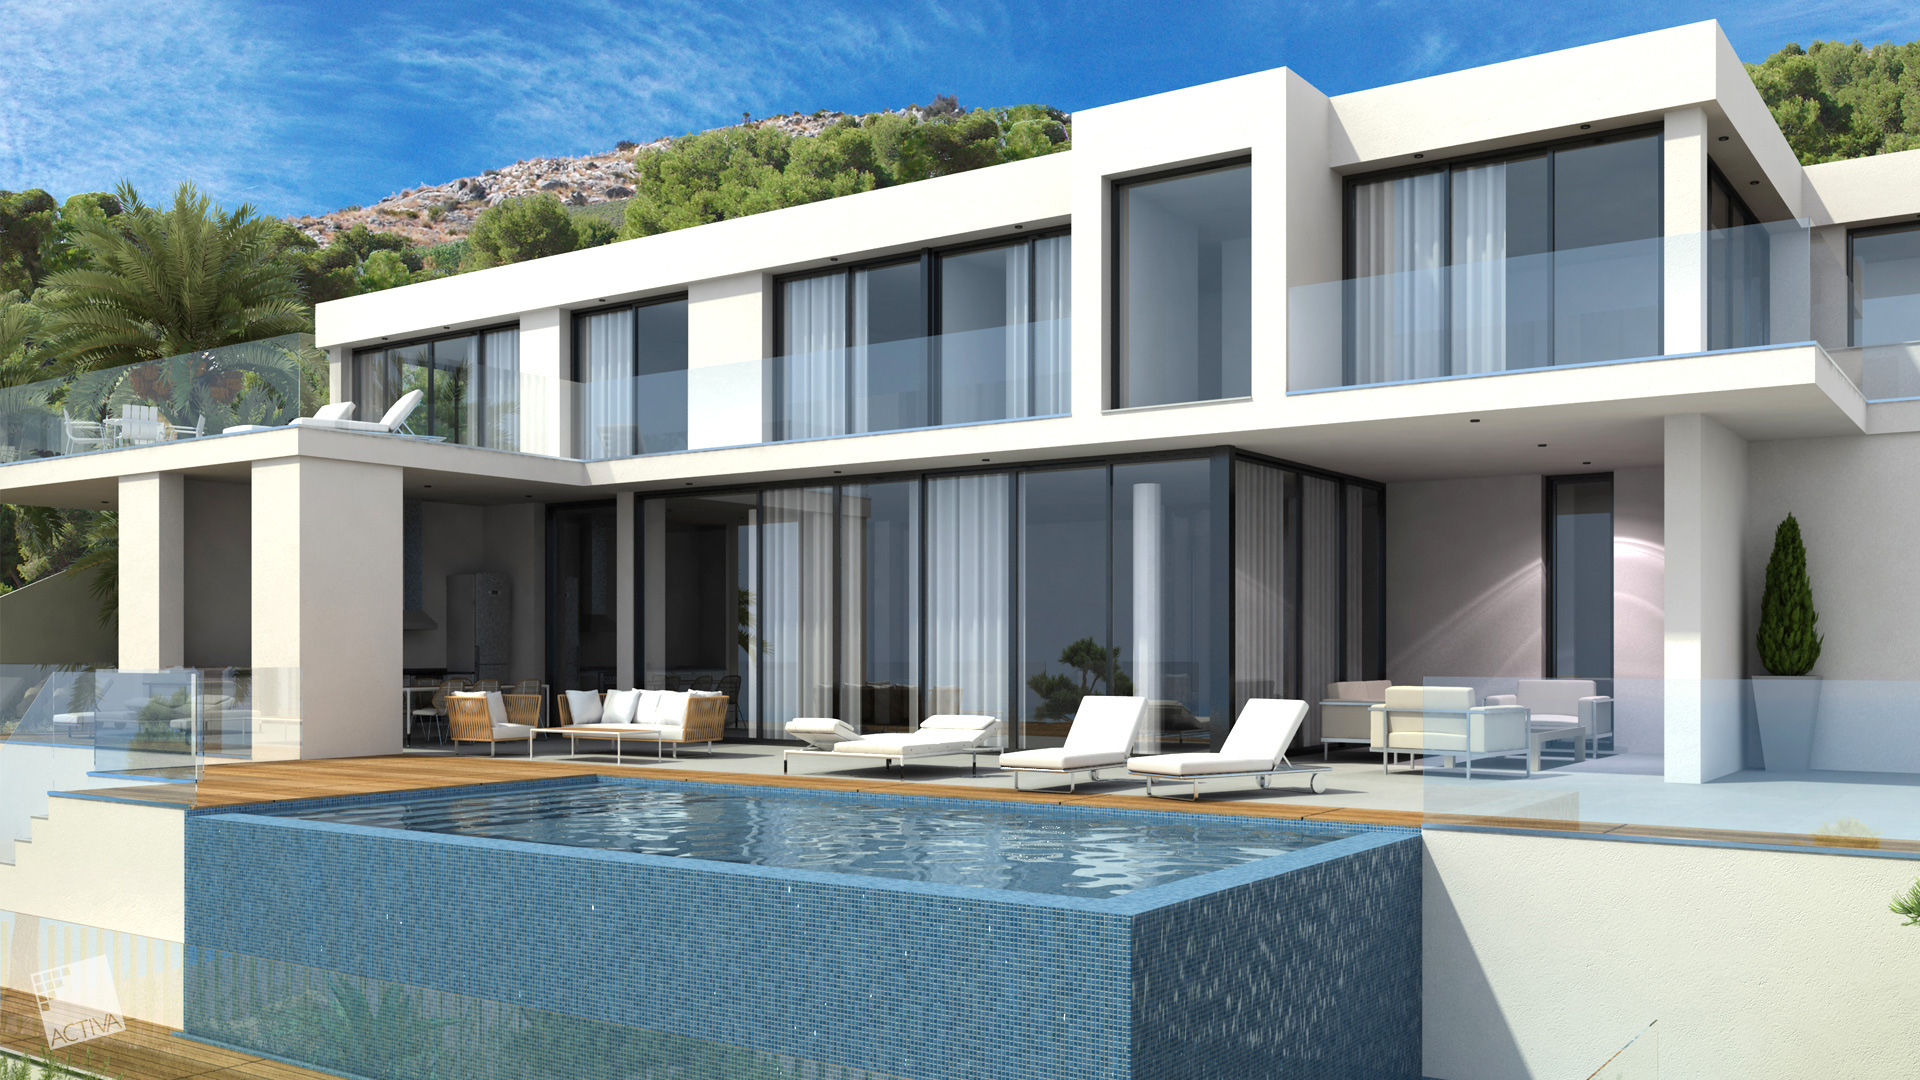 Image Exquisite Luxury Hilltop Villa in Altea 3